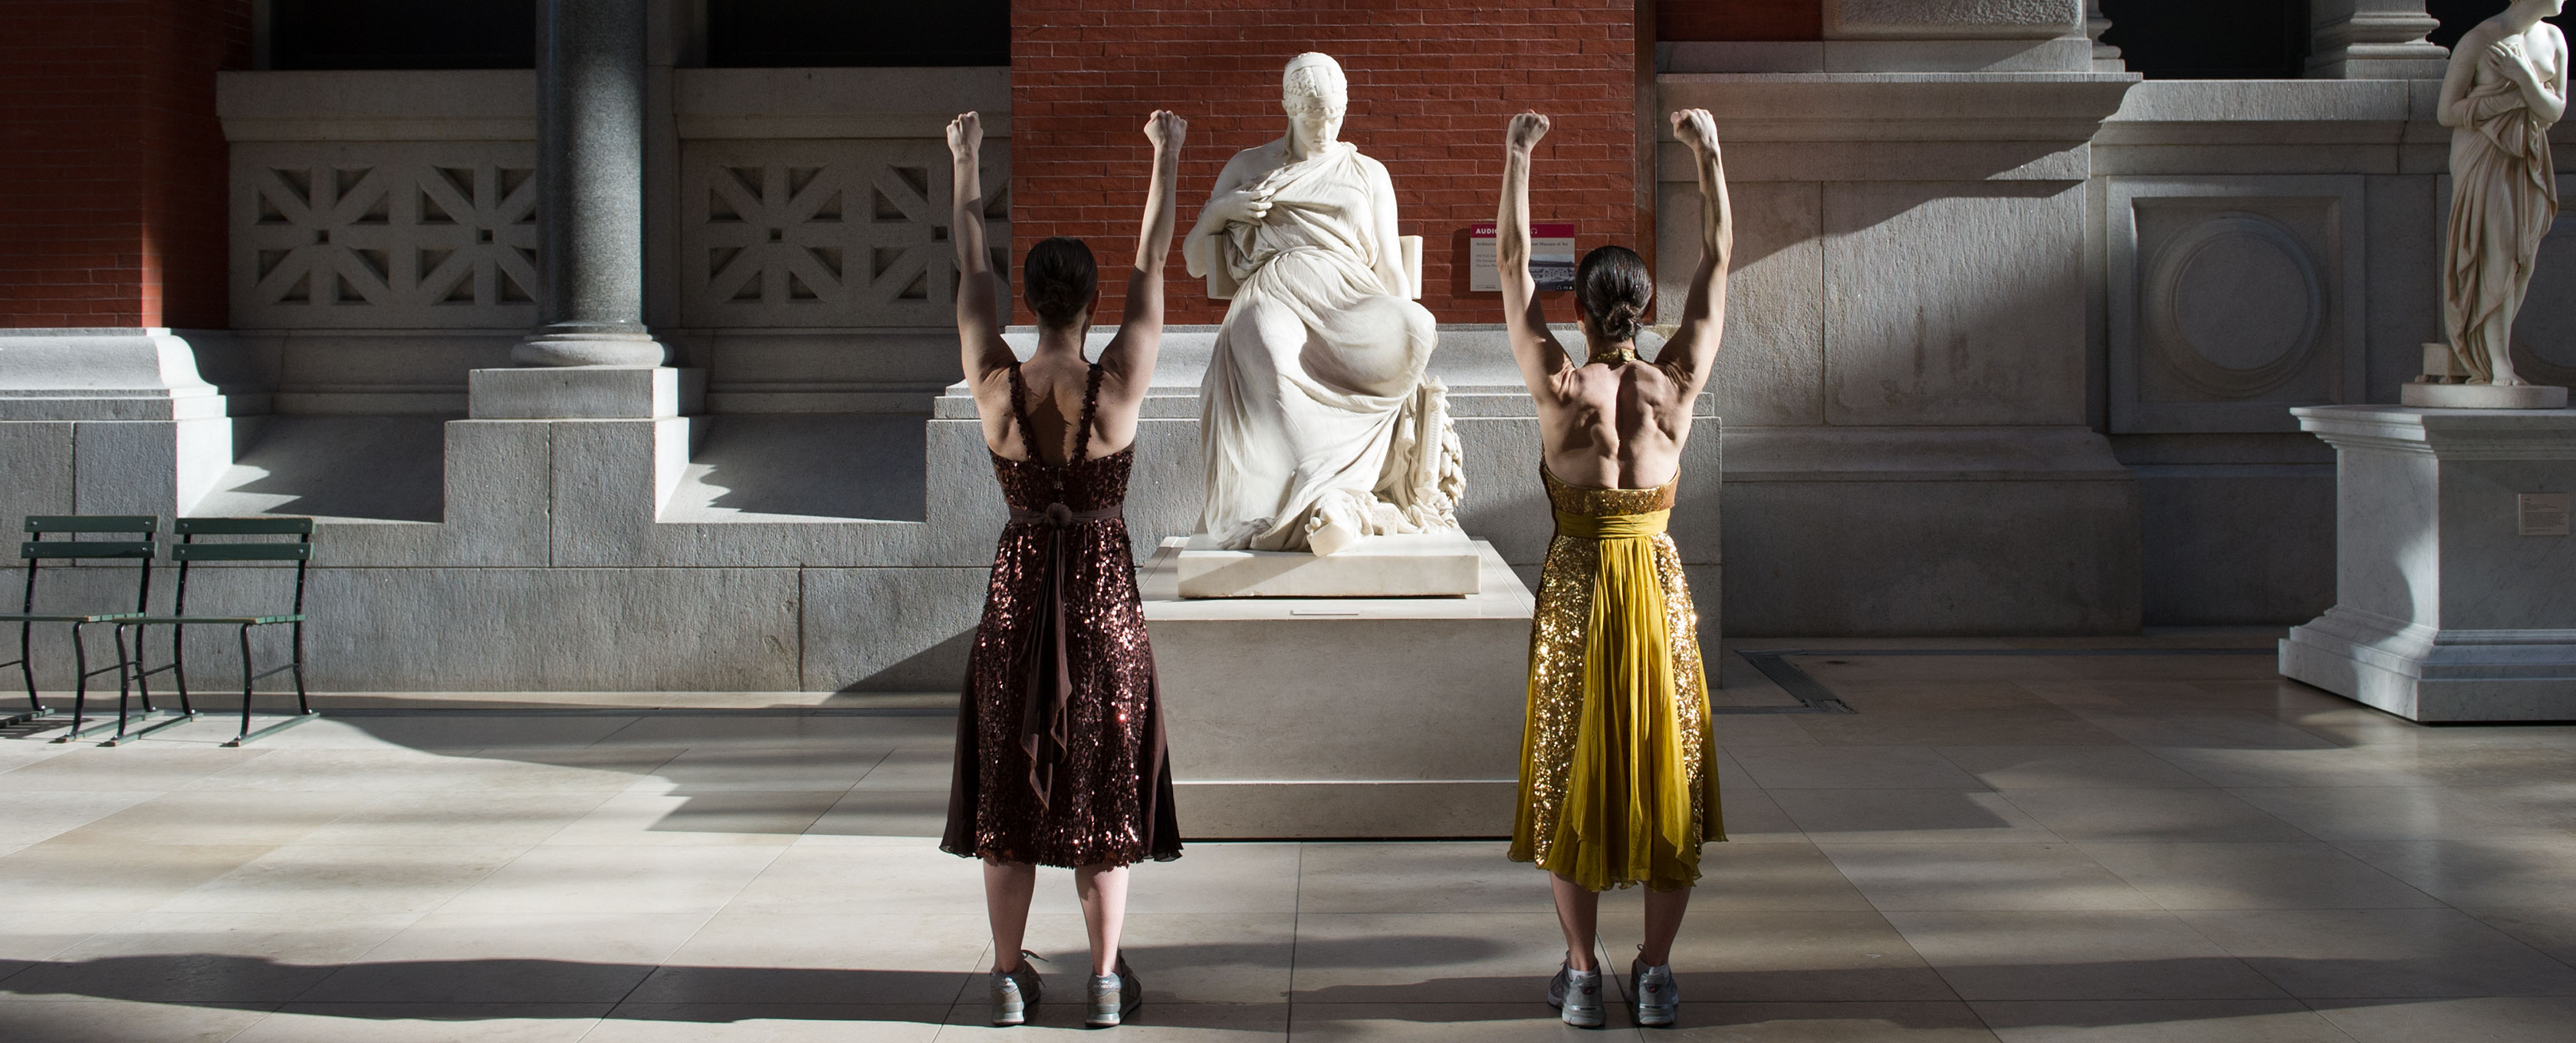 MetLiveArts: The Museum Workout